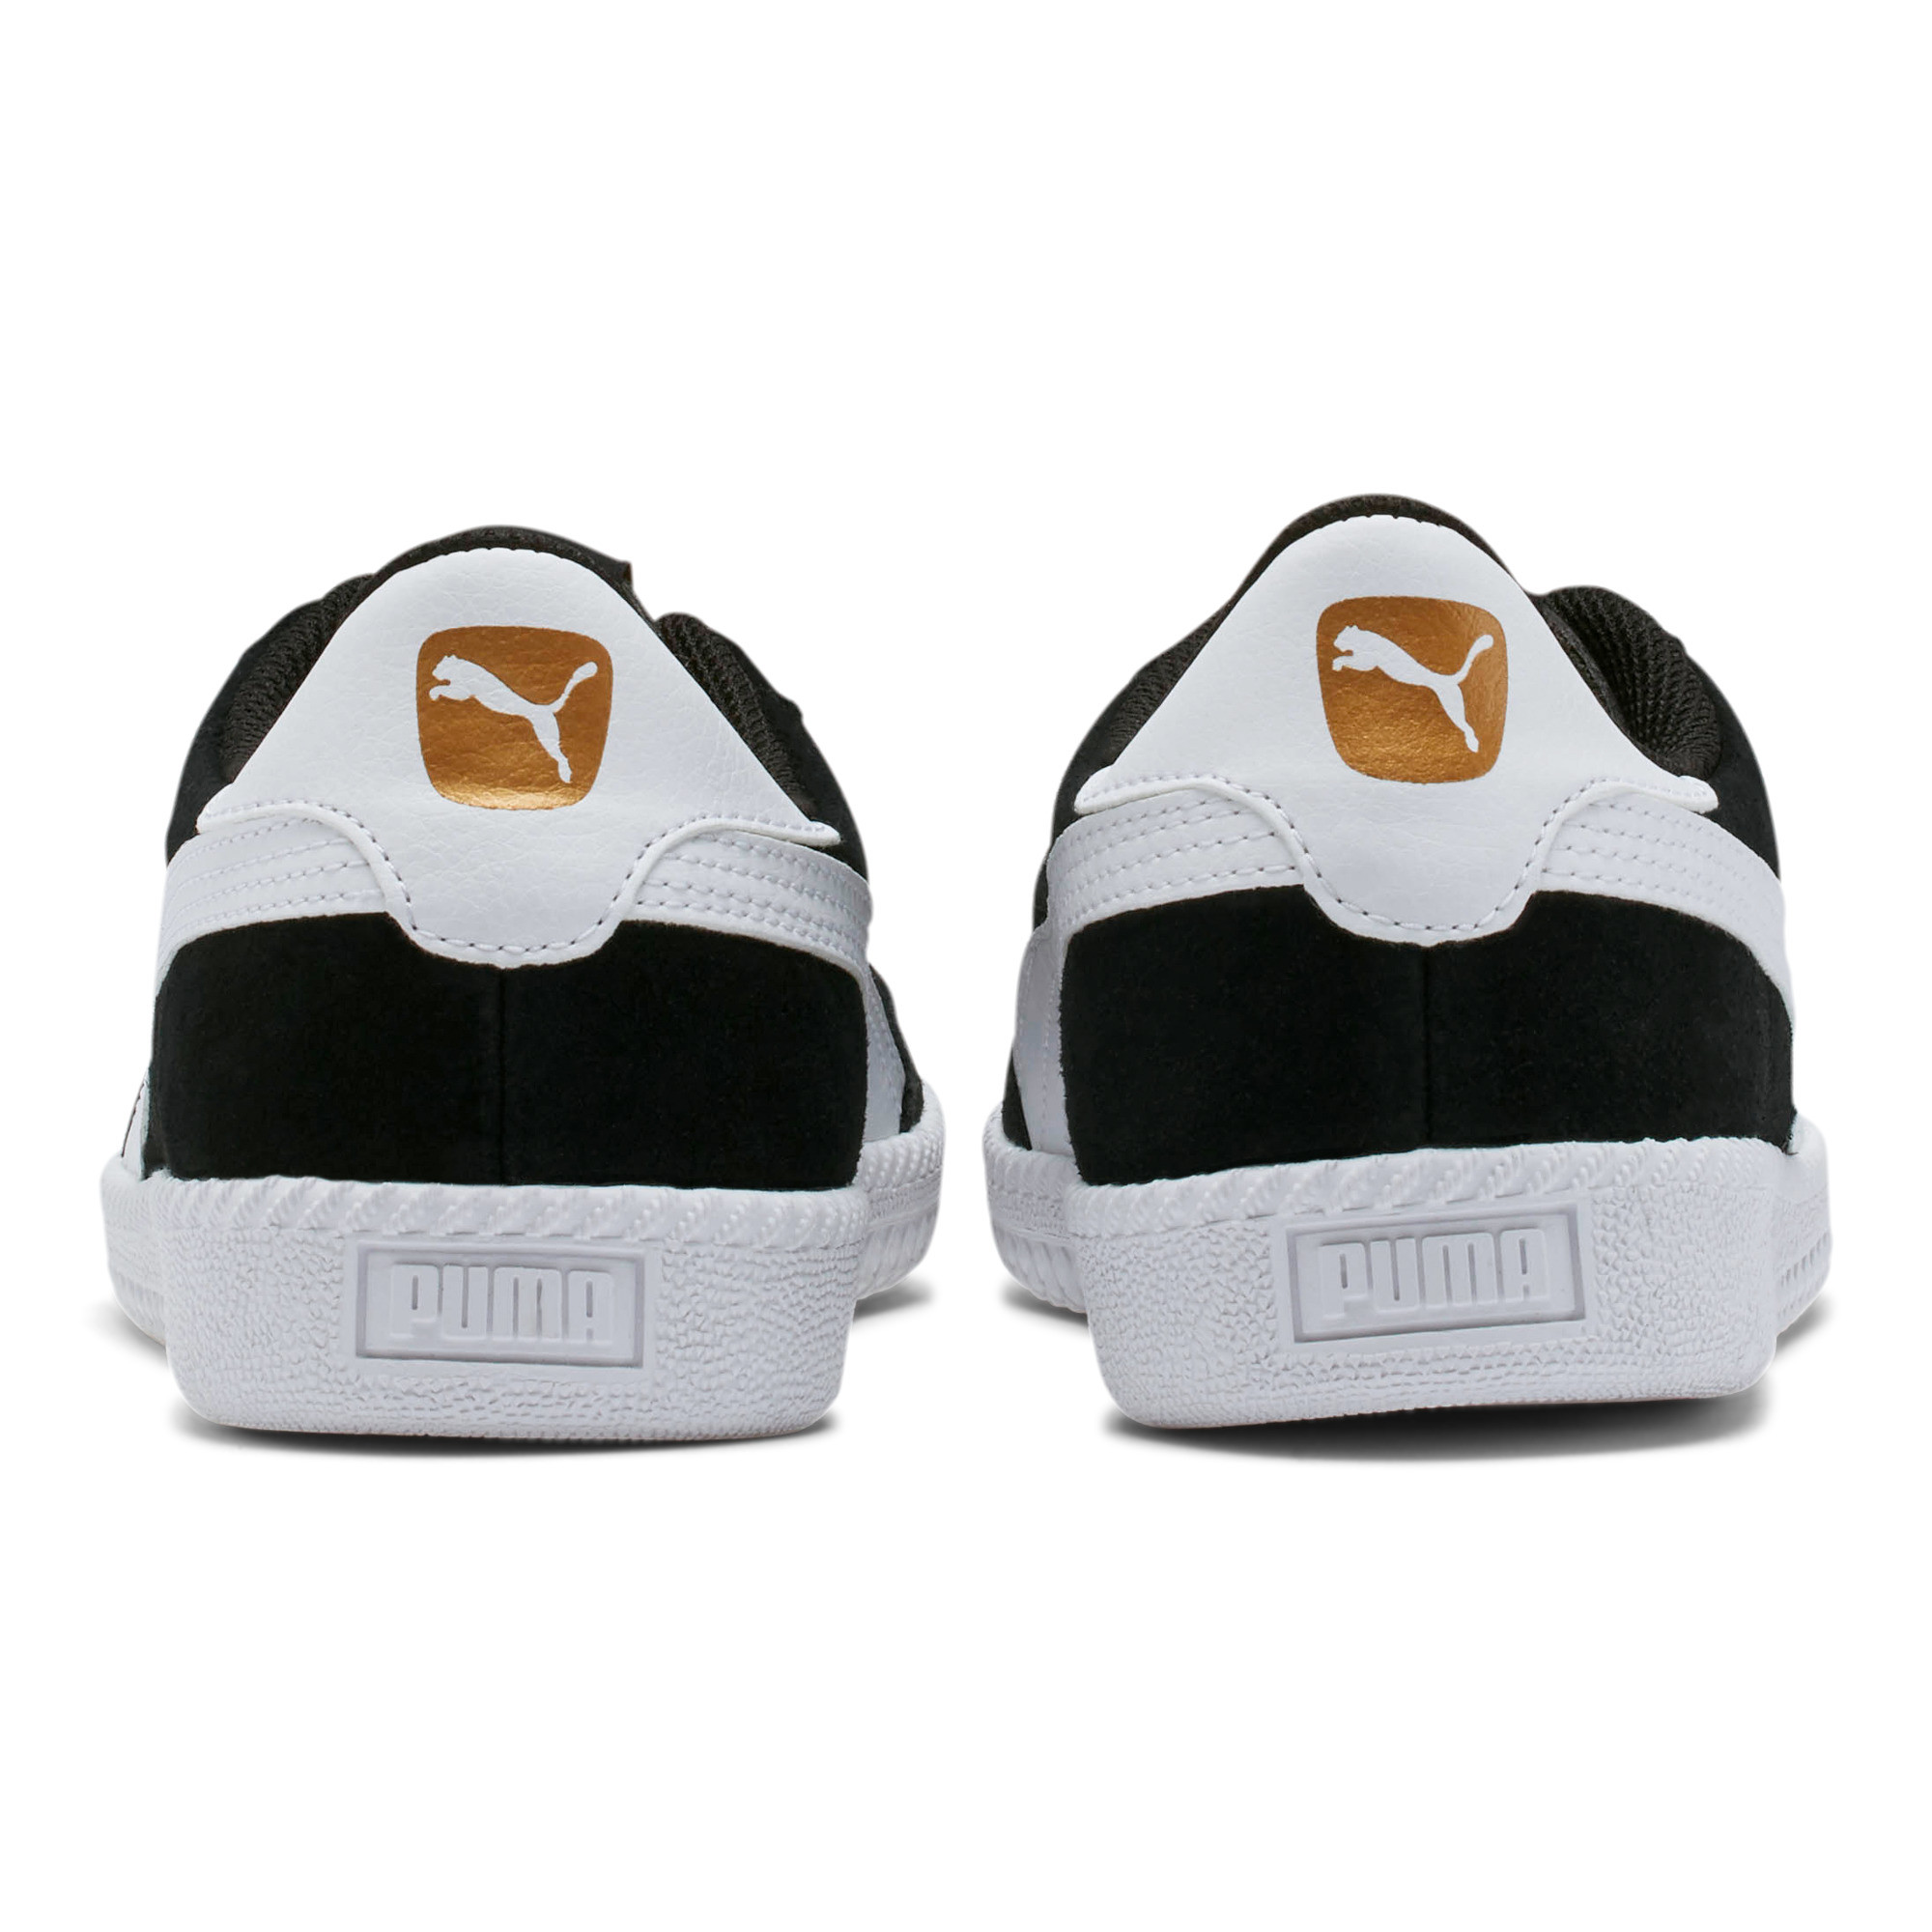 PUMA-Astro-Cup-Suede-Sneakers-Men-Shoe-Basics thumbnail 8